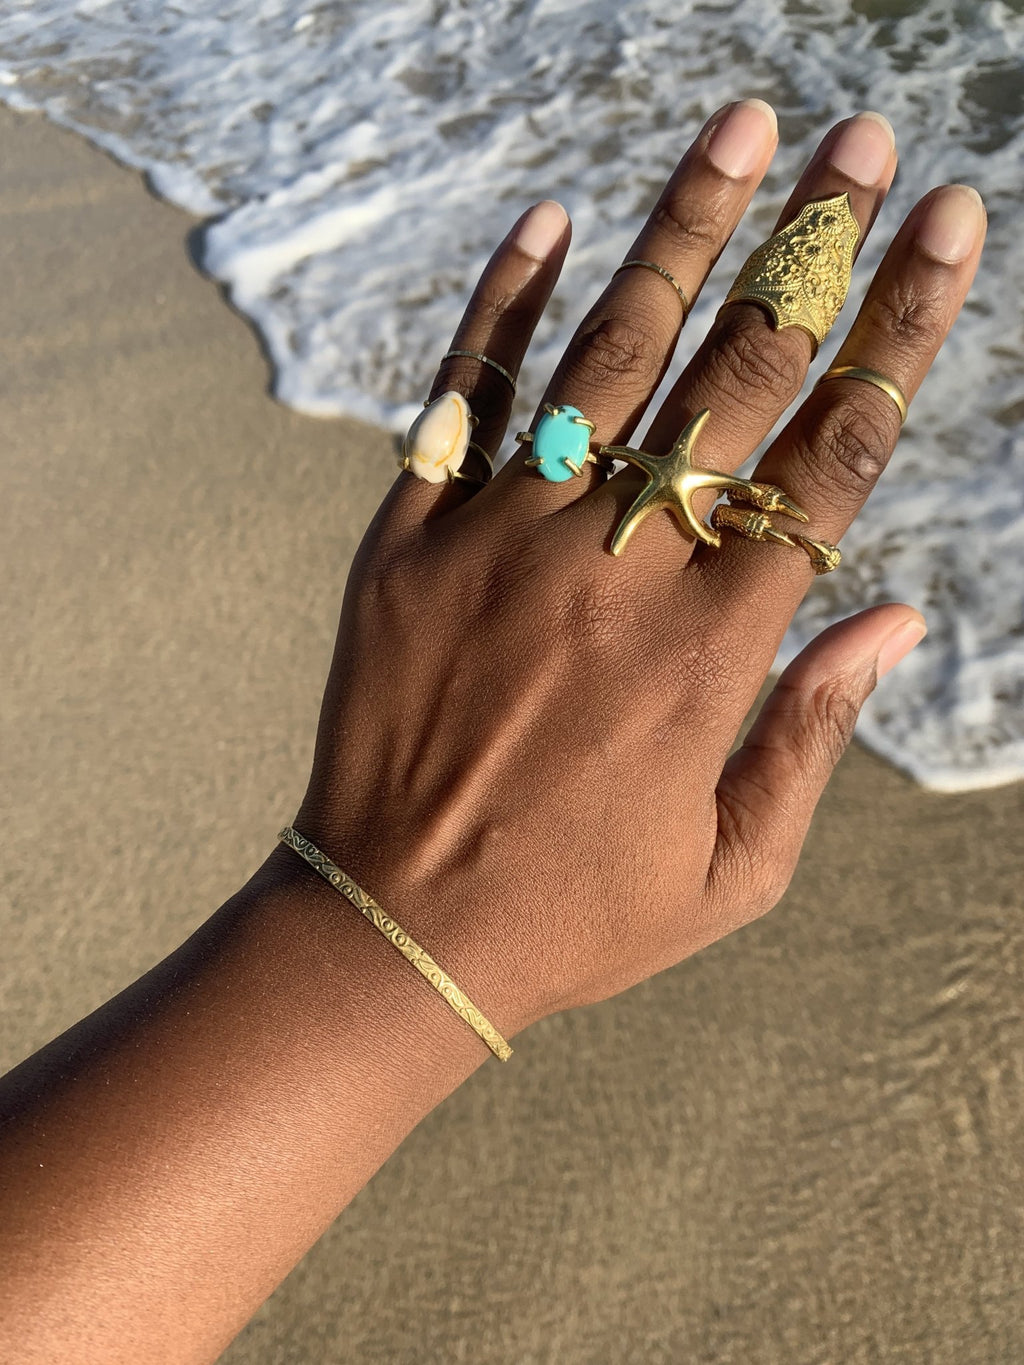 Maya Ocean Hand Made Brass Ring Set - We Love Brass